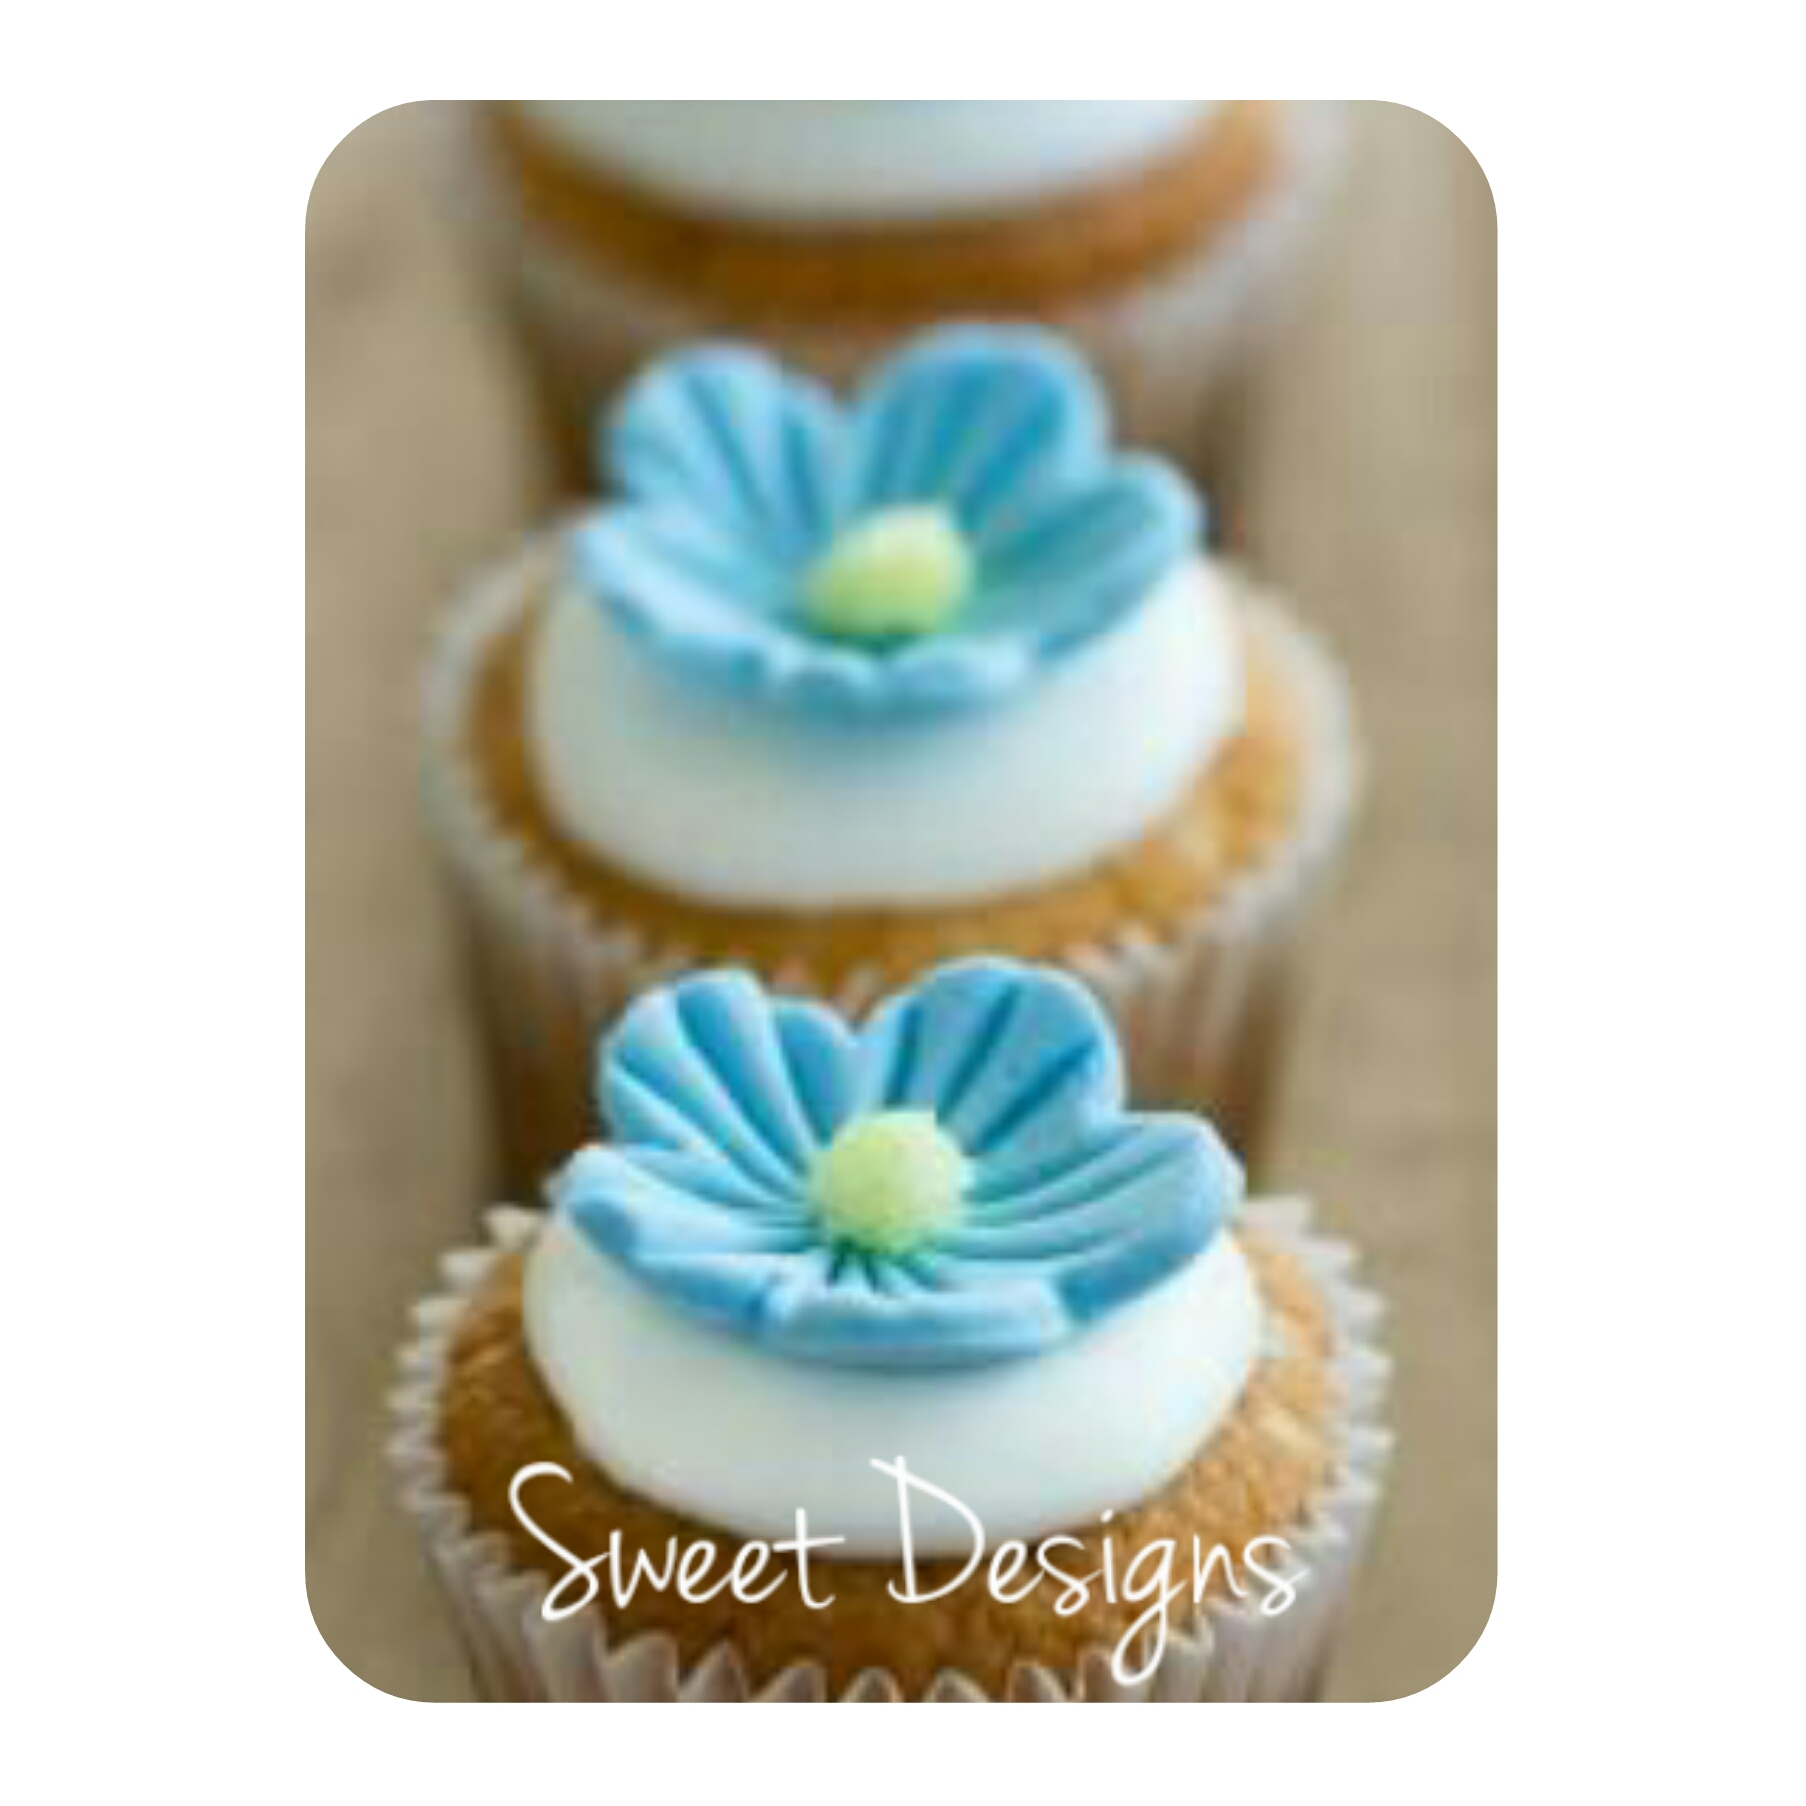 Vanilla Cupcakes with little blue fondant flower